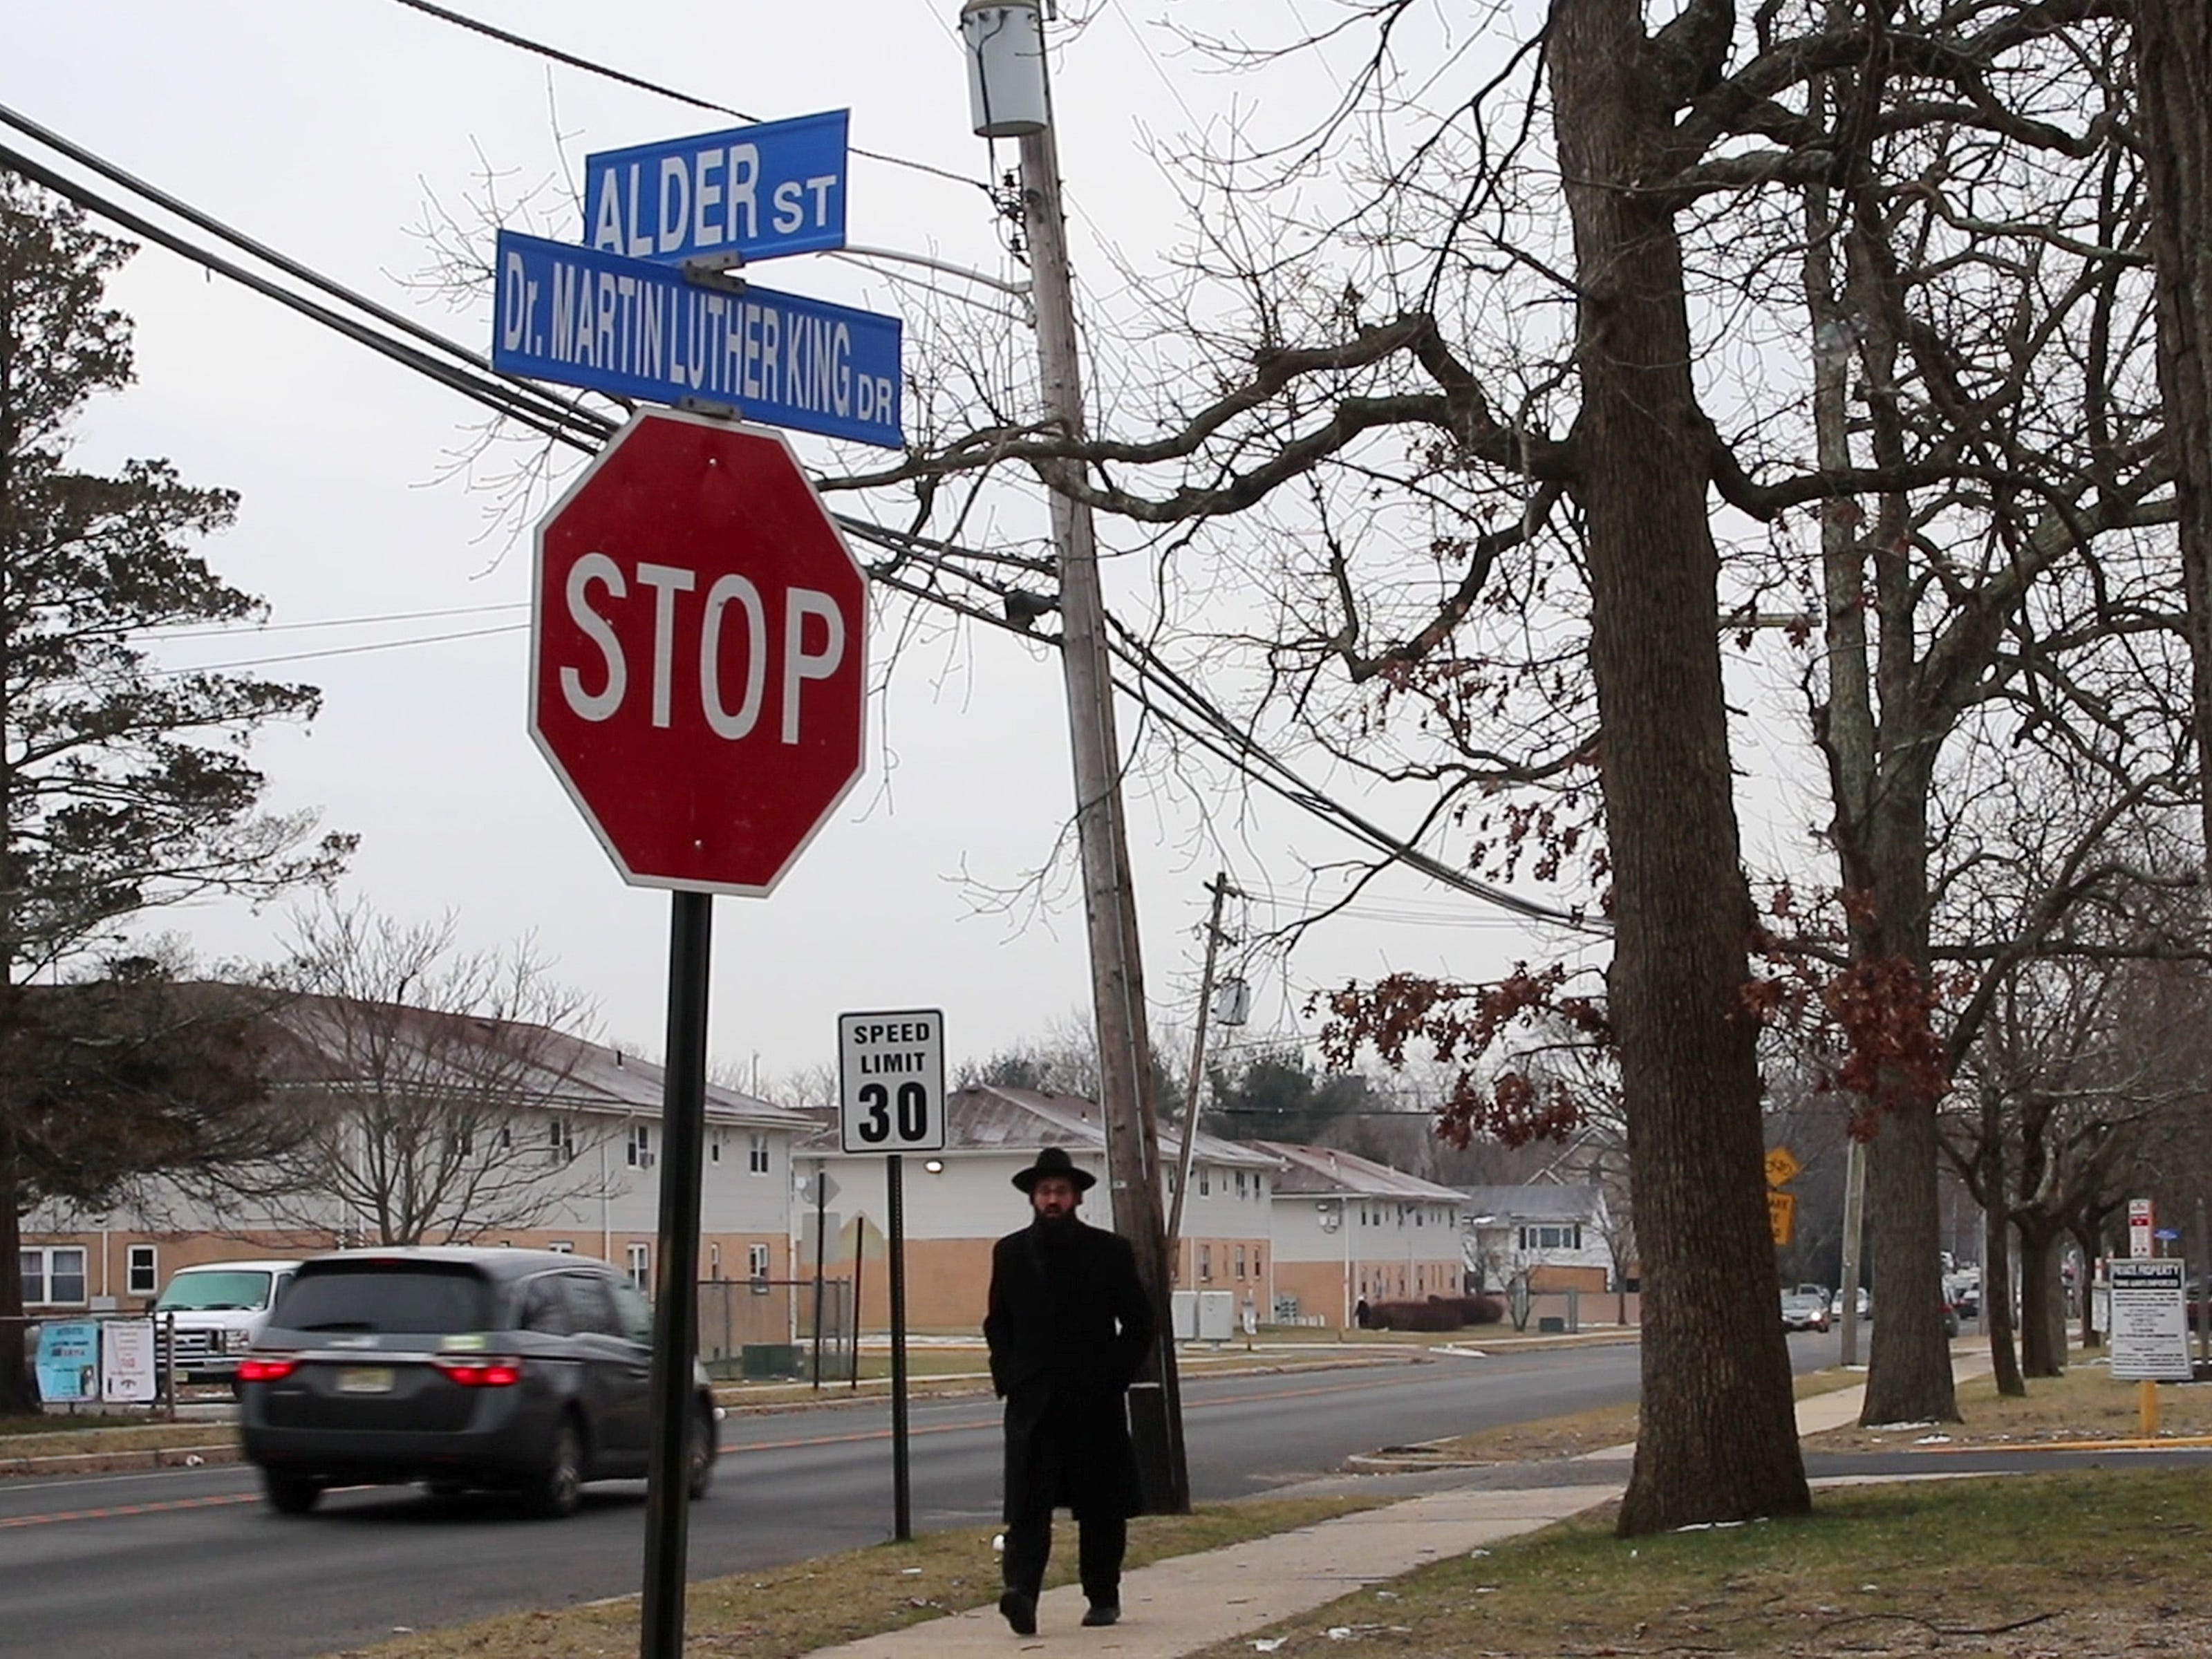 JoNancy Drummer of Lakewood describes how Lakewood and Dr. Martin Luther King Drive changed over the years in Lakewood, NJ Wednesday January 16, 2019. View of Dr. Martin Luther King Drive in Lakewood.